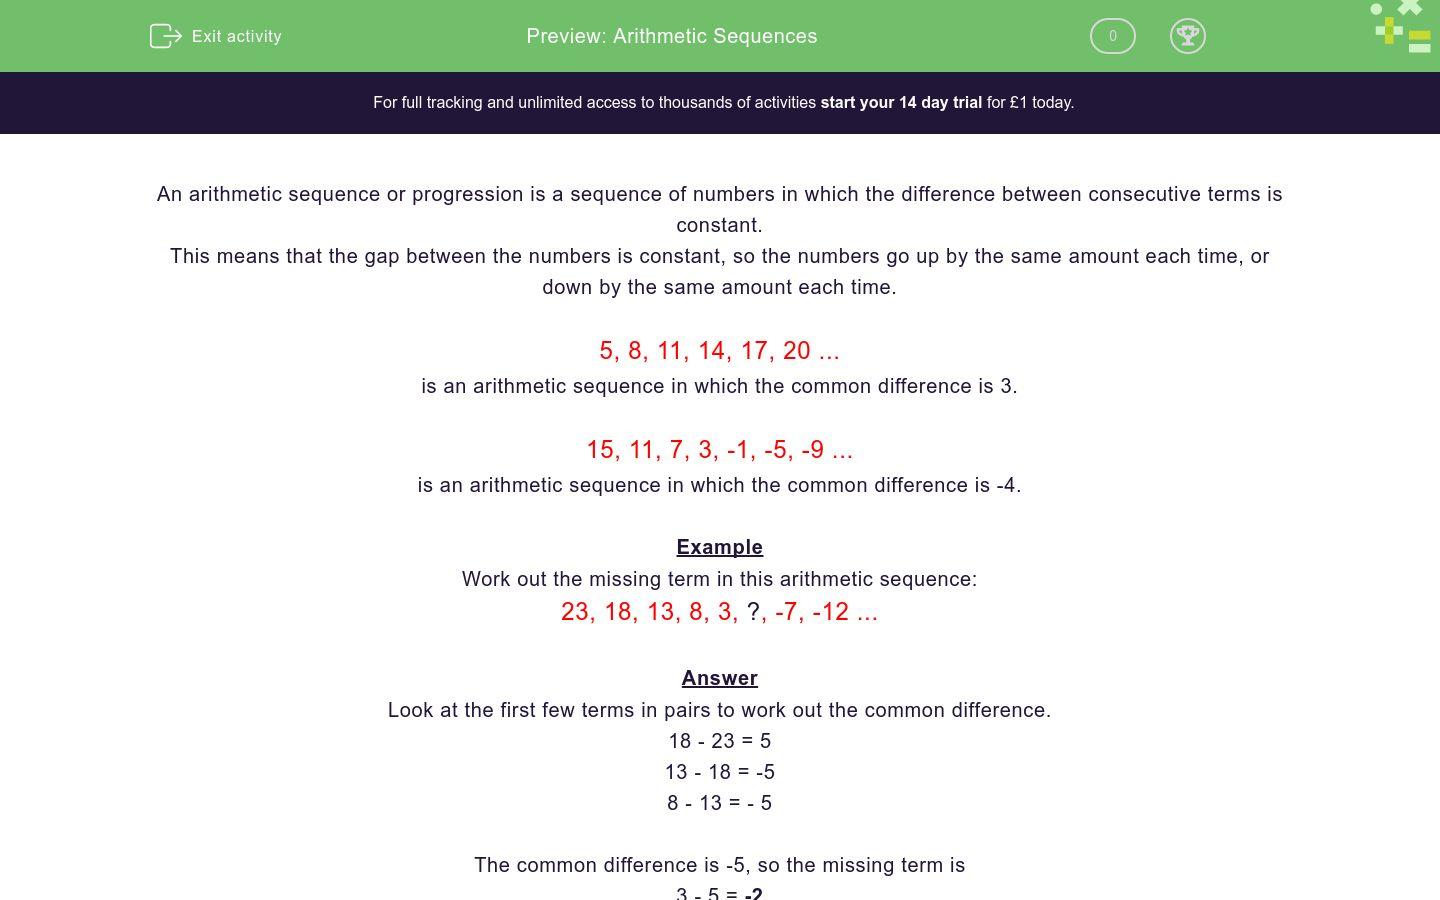 Arithmetic Sequences  solutions  ex les  videos  worksheets further Arithmetic Sequence Worksheet   Oaklandeffect together with Arithmetic Sequences Worksheet – 7th Grade Math Worksheets in addition Math Worksheets Arithmetic Sequences Free Sequence Worksheet Answers in addition Sequences and nth terms worksheet  PDF    Teachit Maths as well Arithmetic Sequence Worksheets together with Sequence Ex le Math Maths Worksheet A Answer Arithmetic Sequencing also  further Arithmetic Sequences And Series Worksheet Answers Math Section furthermore Solving Equations with Variables On Both Sides Worksheet 8th Grade furthermore Grade 10 Math Worksheets and Problems  Arithmetic Progressions additionally arithmetic and geometric sequence worksheet   Siteraven moreover 12 1 homework and practice arithmetic sequences as well Arithmetic And Geometric Math Arithmetic Sequence Worksheet Answers also geometric and arithmetic sequence worksheet math – joom club additionally CMP3   8th Grade   Unit 8 Inv  2 1   Arithmetic Sequences   TpT. on arithmetic sequence worksheet 8th grade